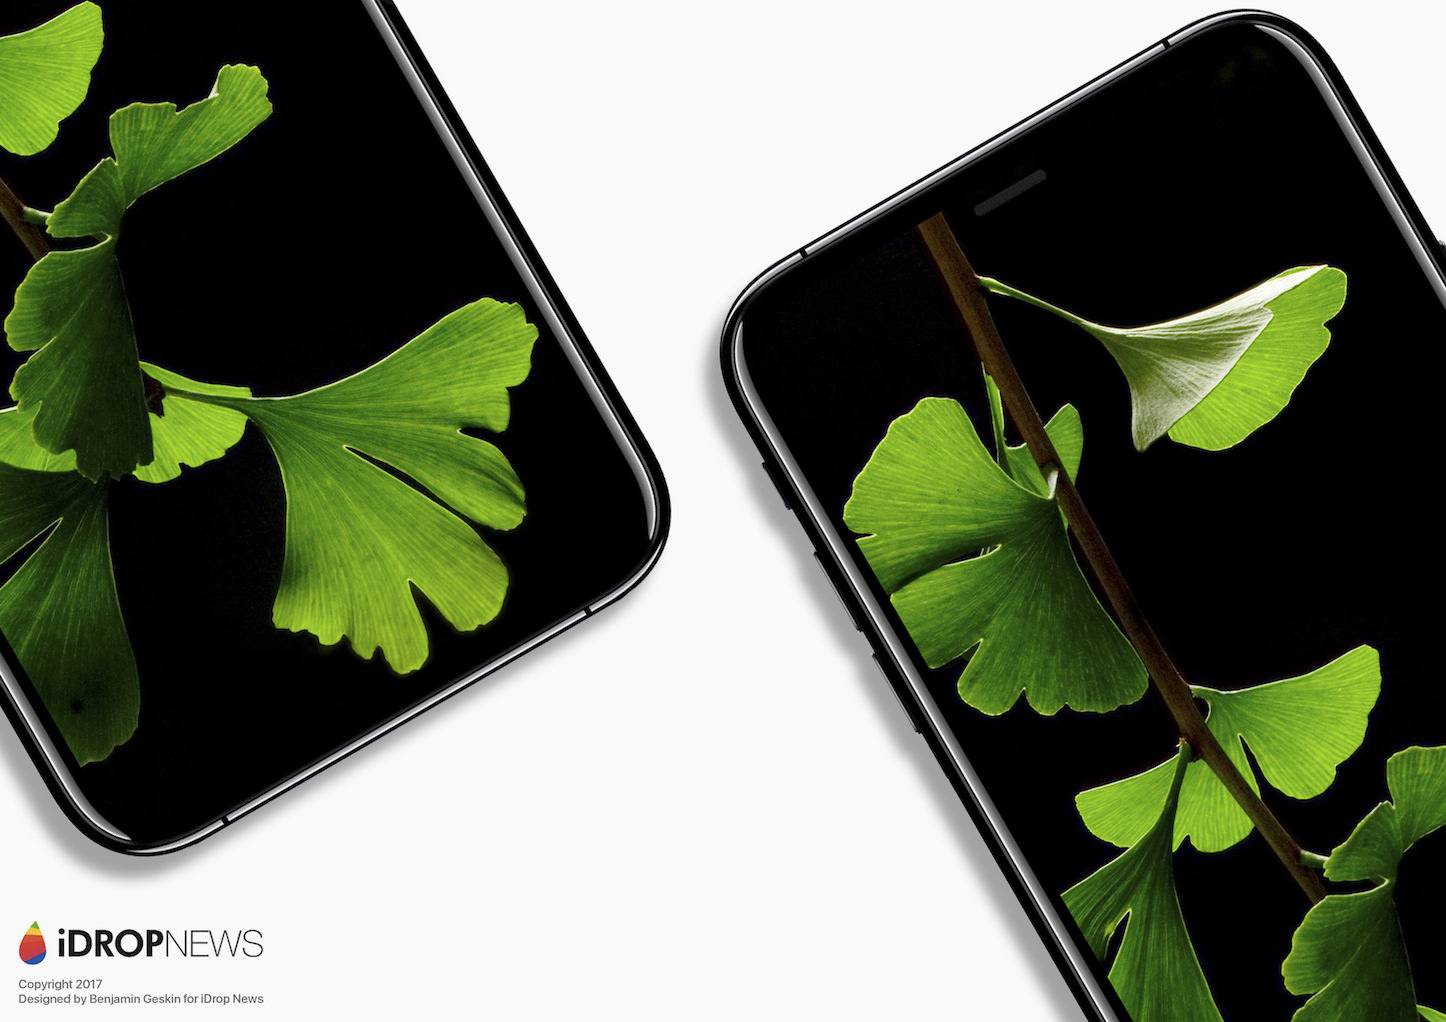 IDrop News Exclusive iPhone 8 Image 2